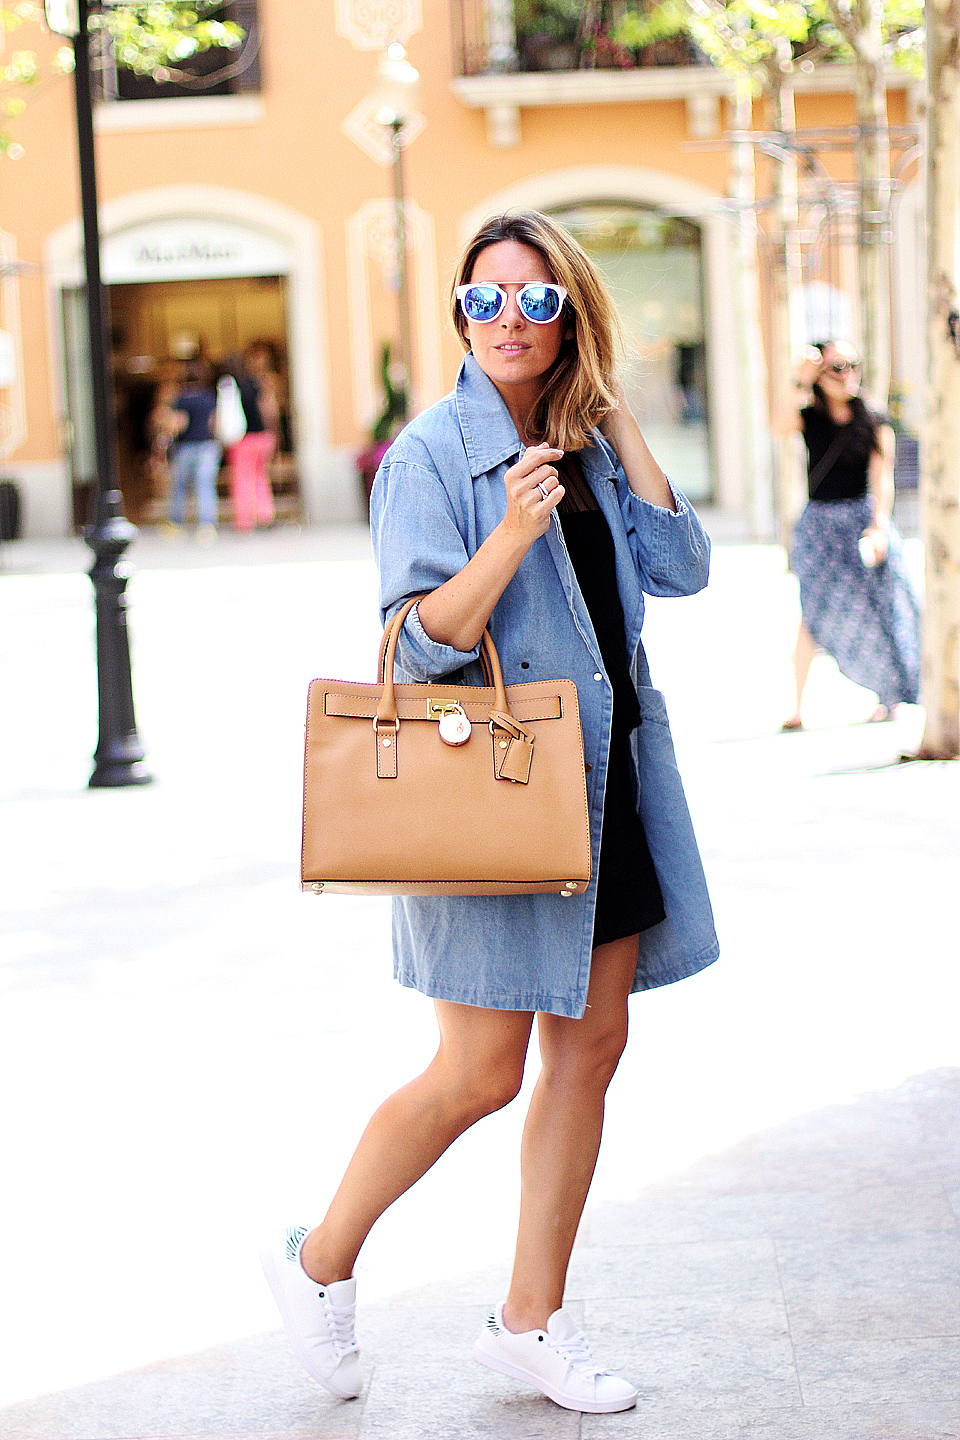 sneakers-outfit-blogger (2)2